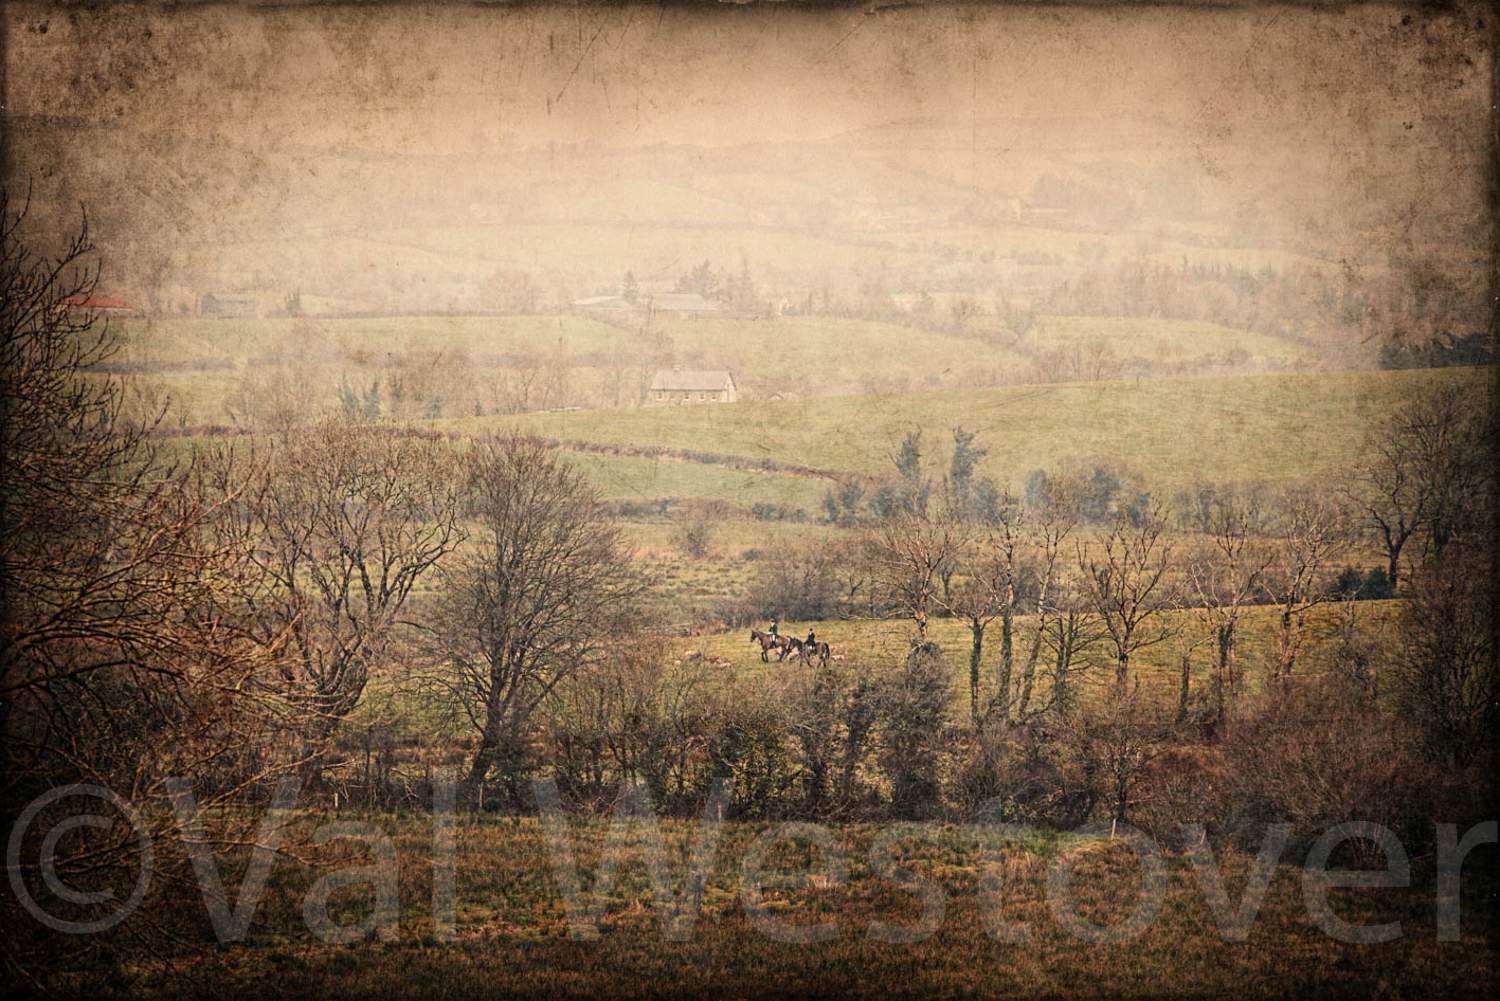 val-westover-photography--28.jpg